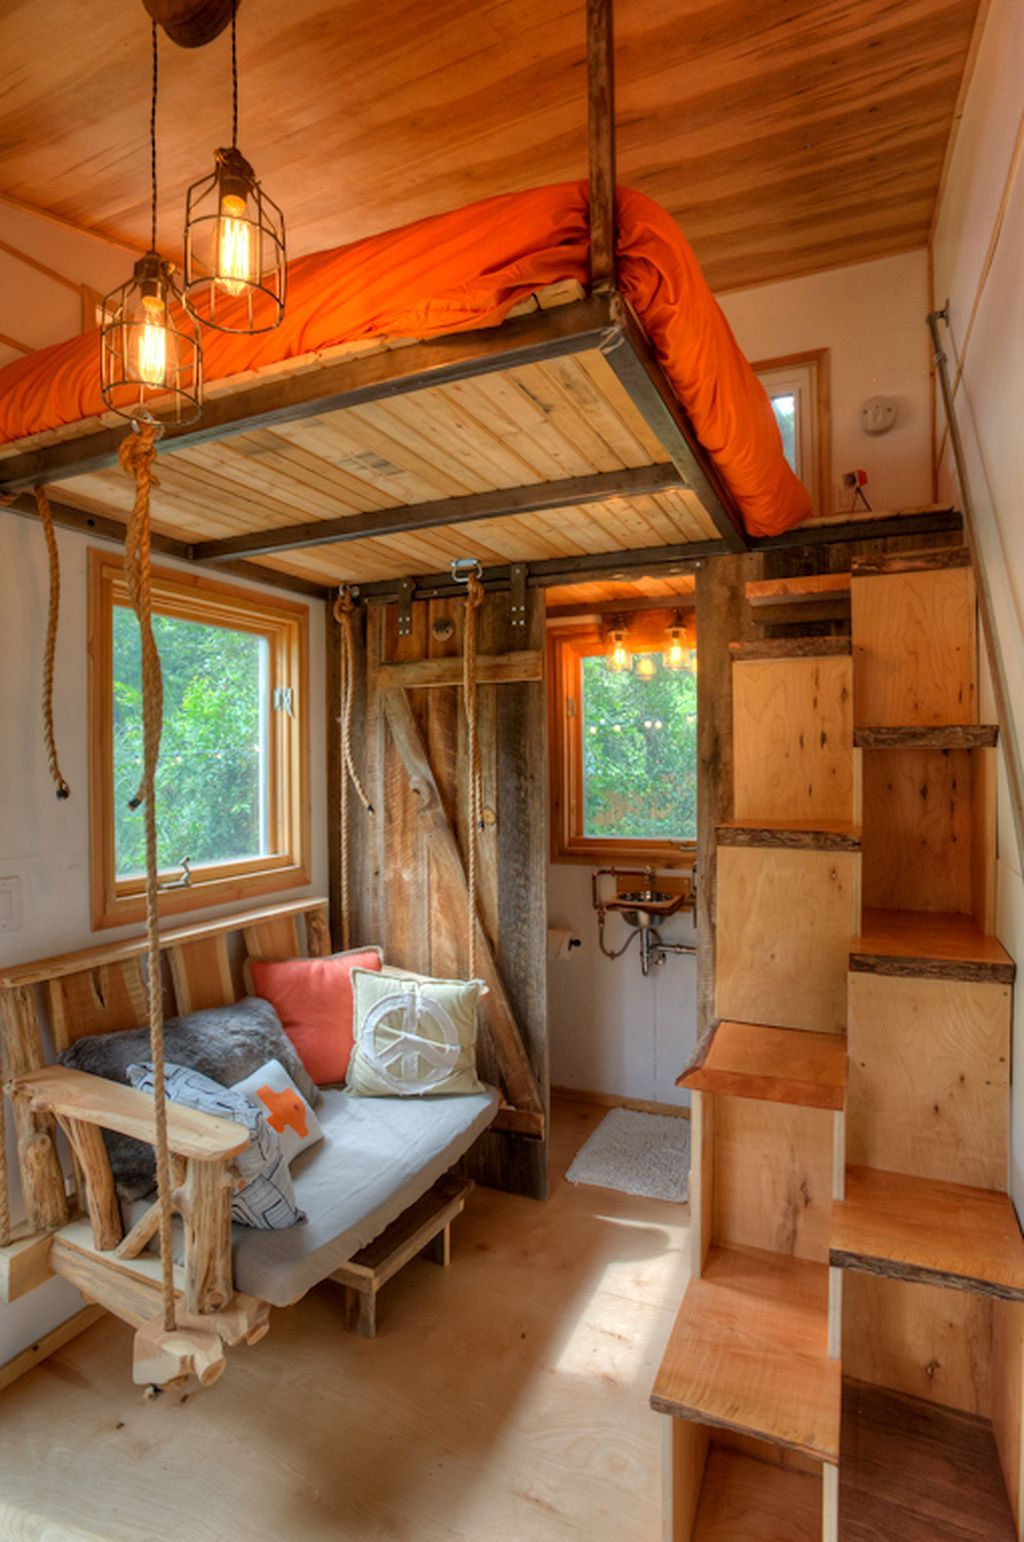 Stunning 50+ Fabulous Tiny Houses Design That Maximize Style And Function  Https://